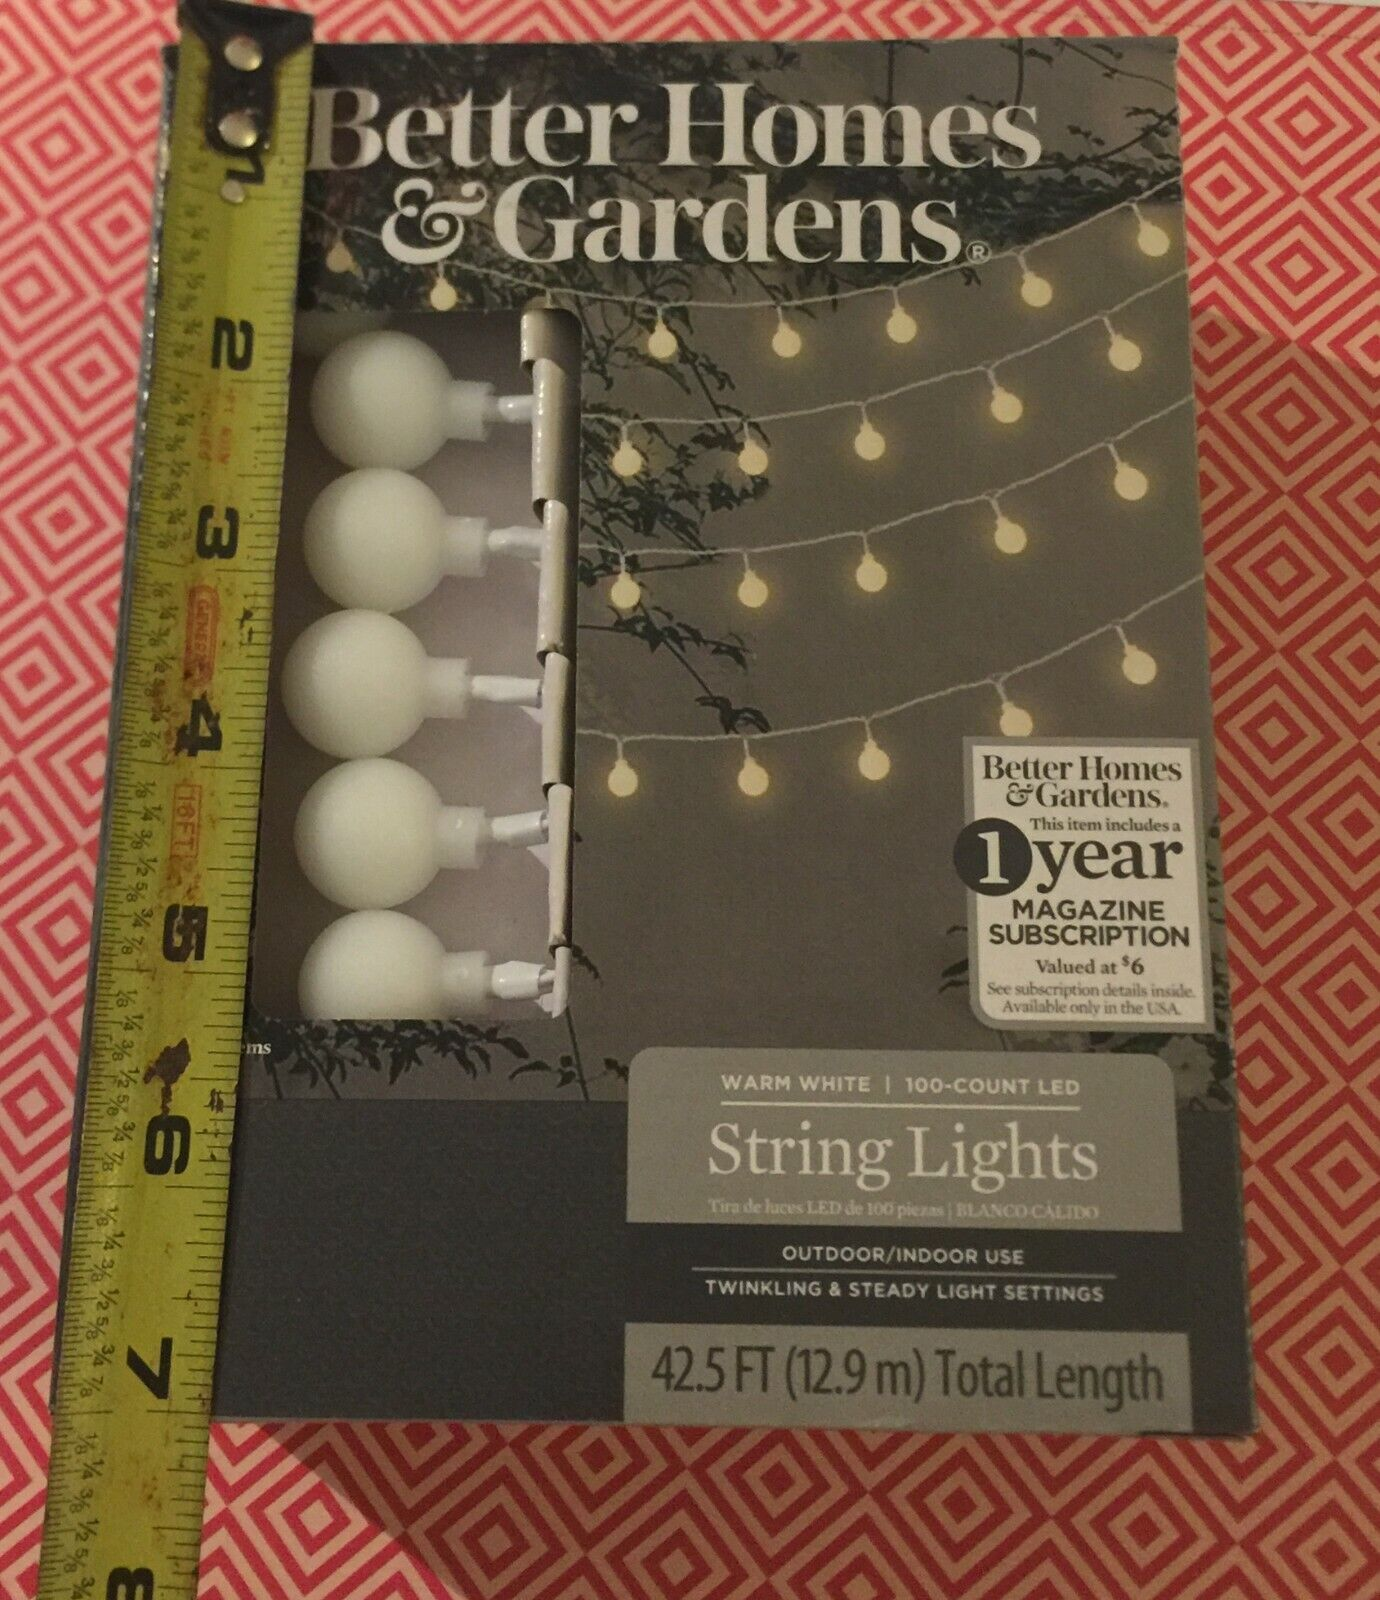 Better Homes Gardens 100 Count Led Indoor/outdoor String Lights Warm White  - $24.99